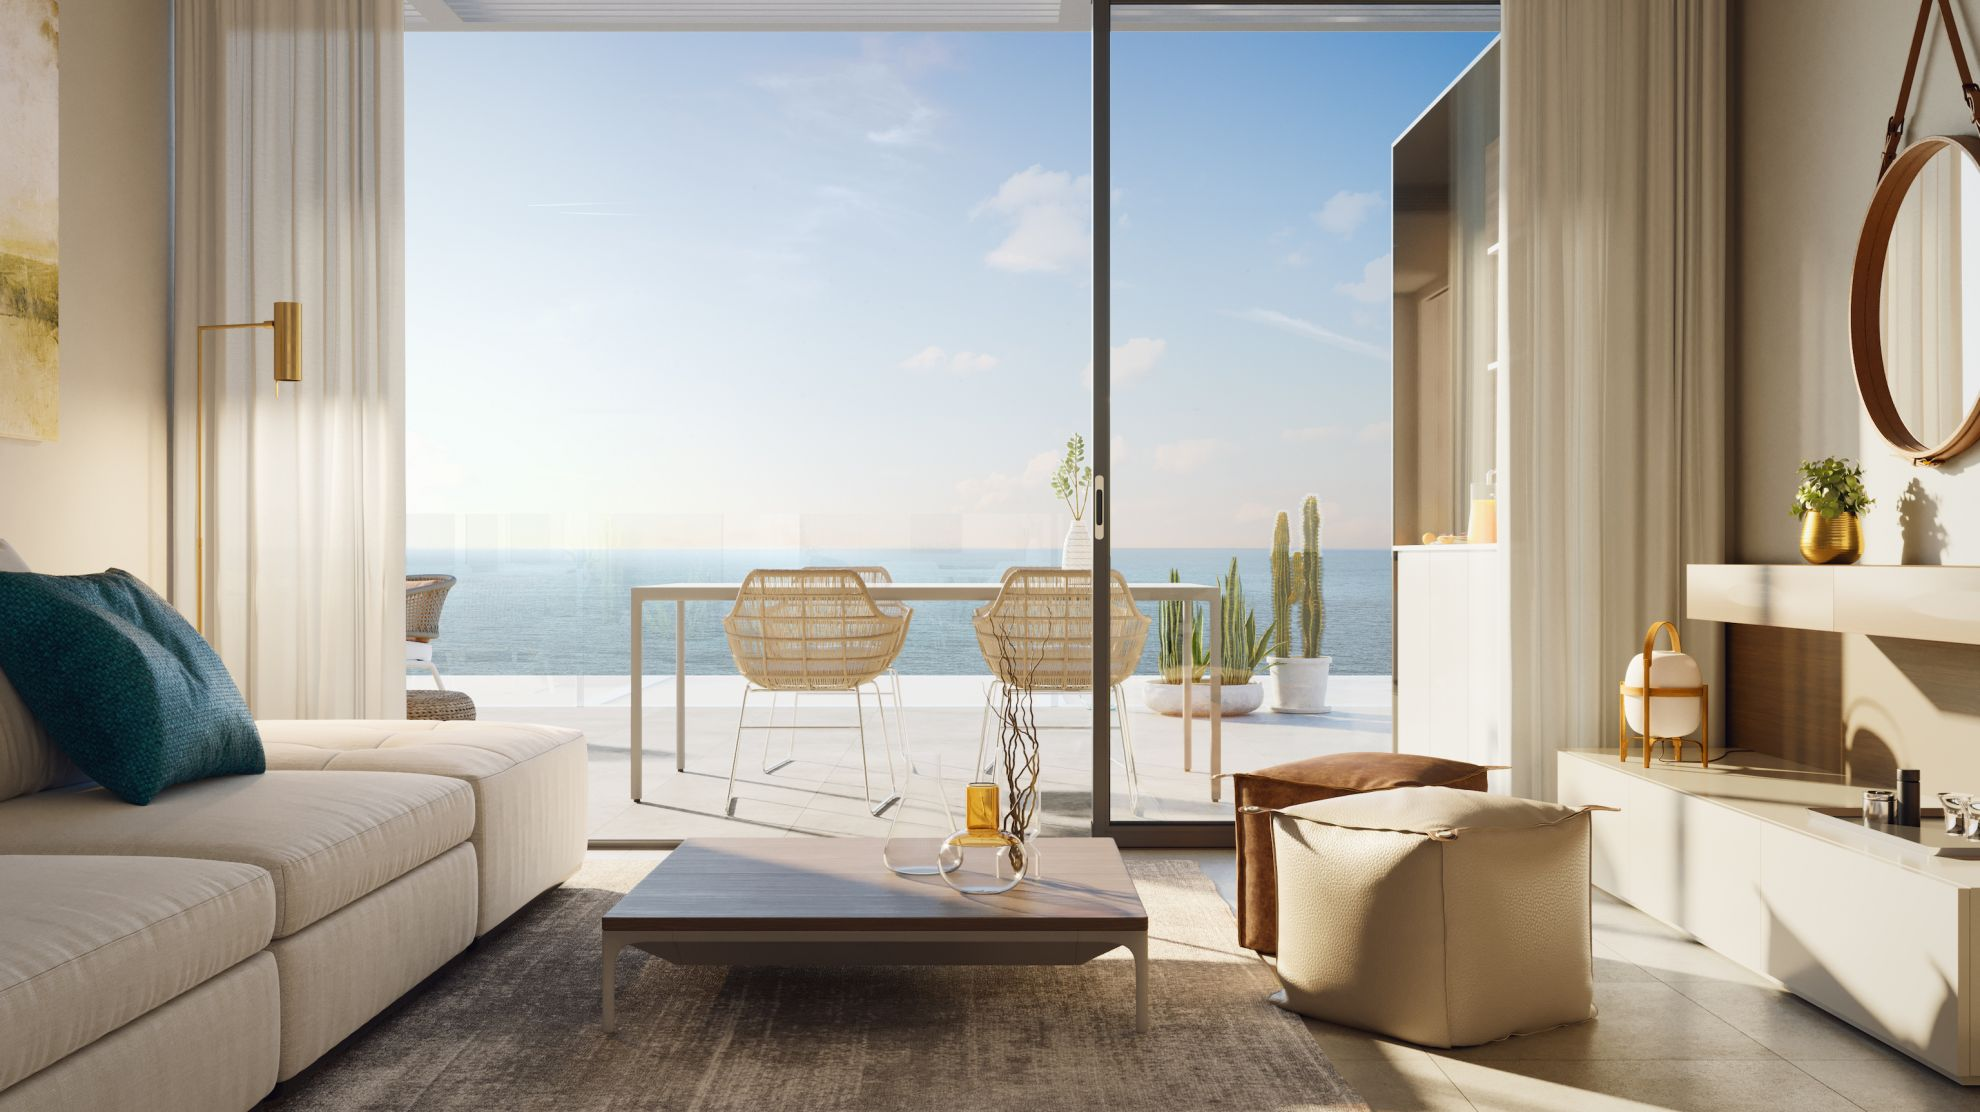 2 and 3 bedroom penthouse-style apartments with big terraces overlookg the sea. House 17 11